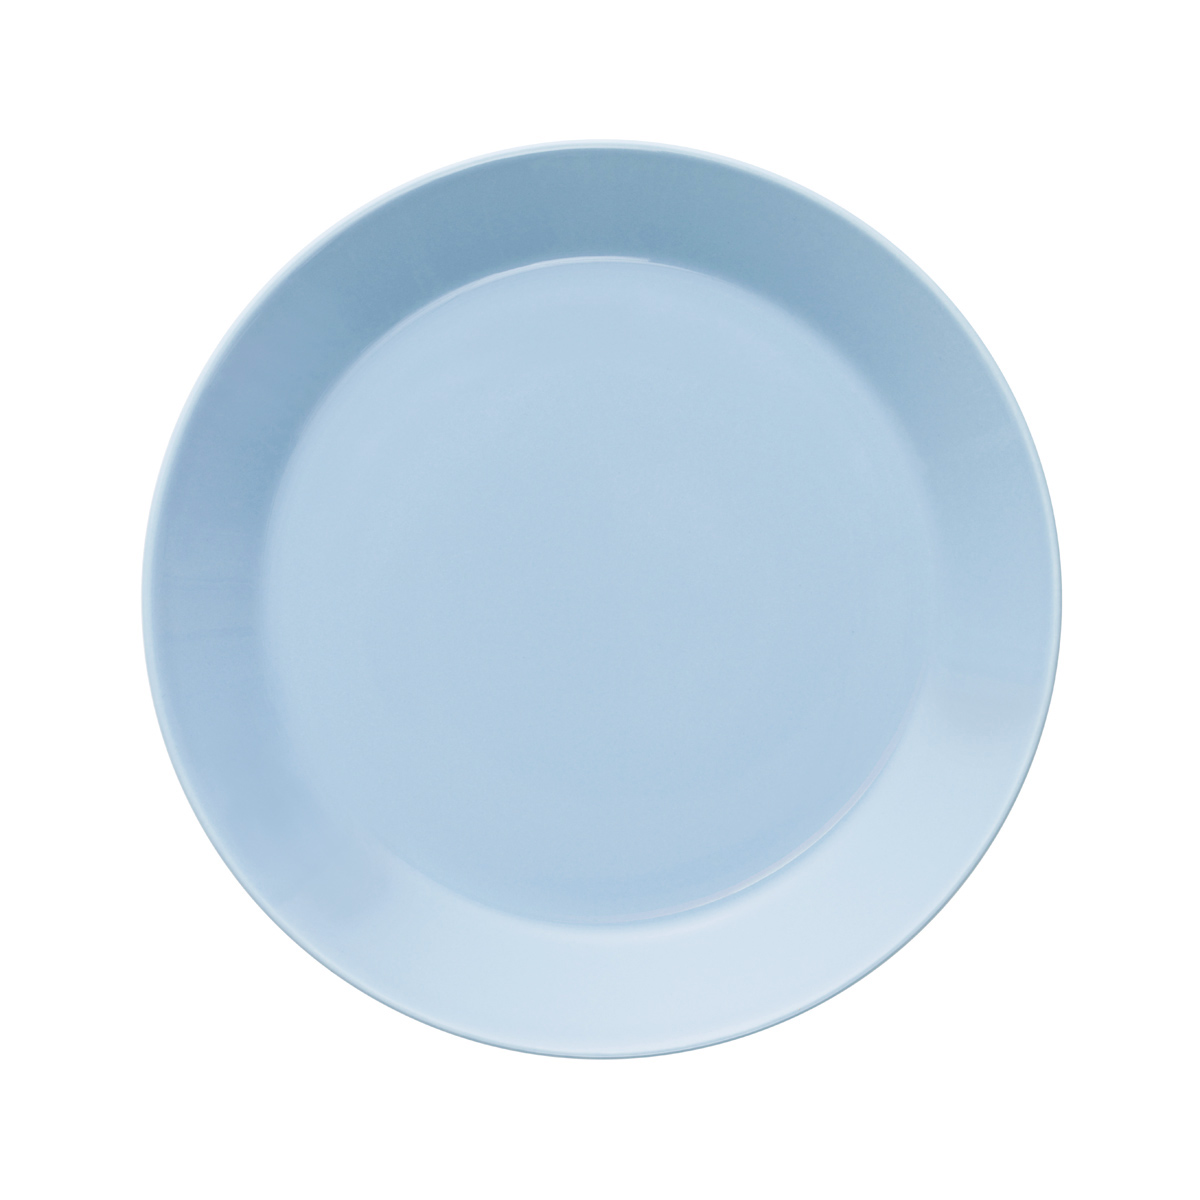 iittala teema light blue salad plate iittala teema light blue dinnerware. Black Bedroom Furniture Sets. Home Design Ideas